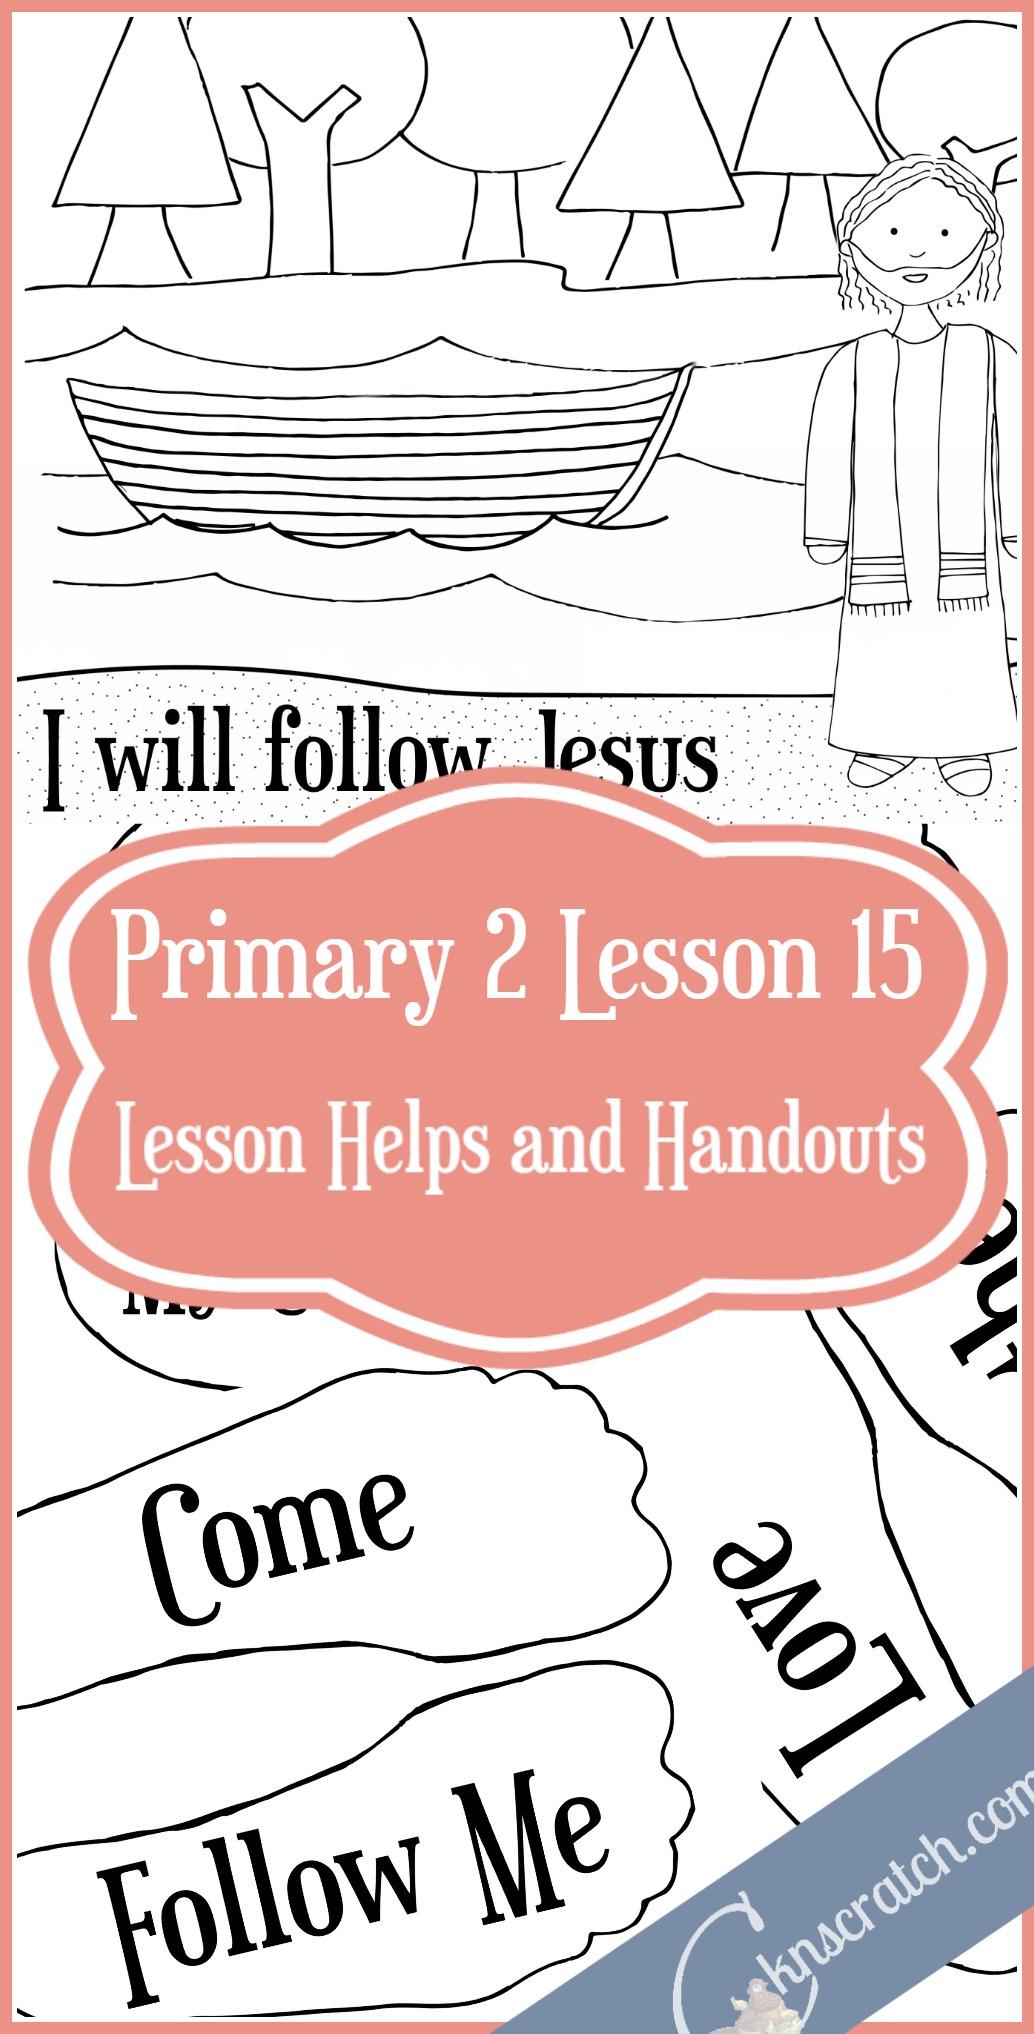 This site is my best friend for all my Sunday lessons. LDS lesson helps and handouts for Primary 2 Lesson 15: Come Follow Me